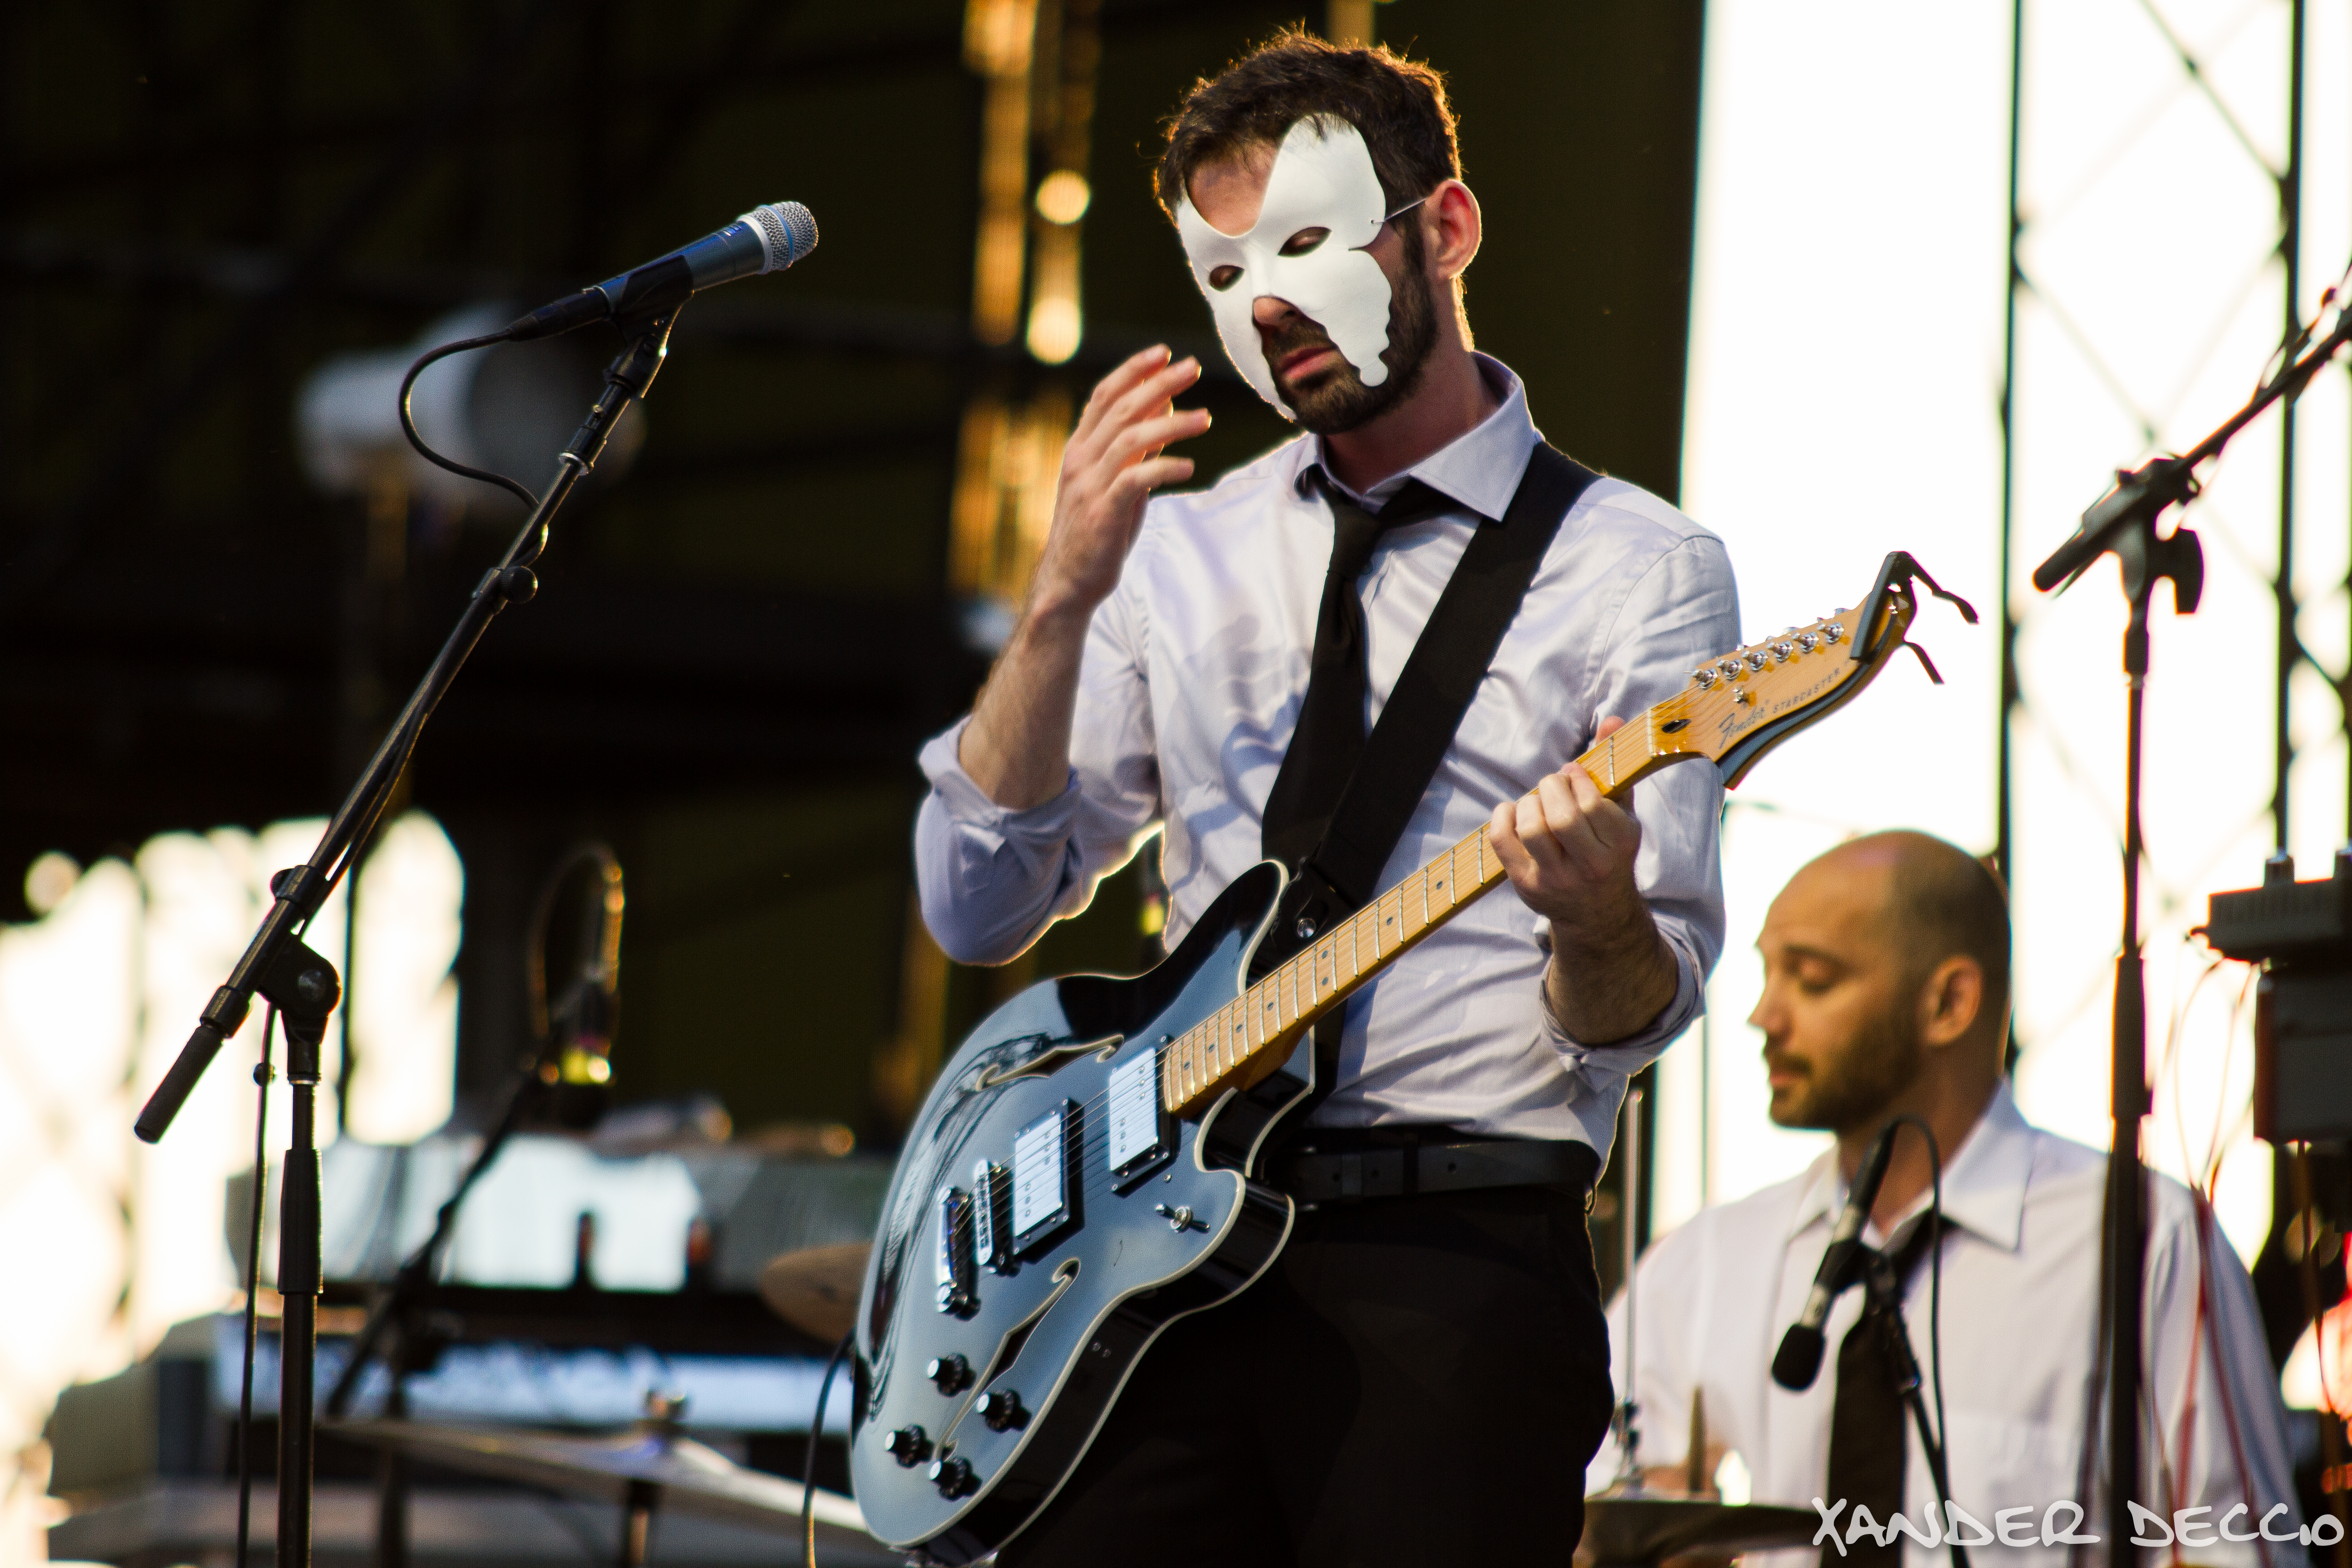 The Antlers Live at The Gorge (Photo by Xander Deccio)